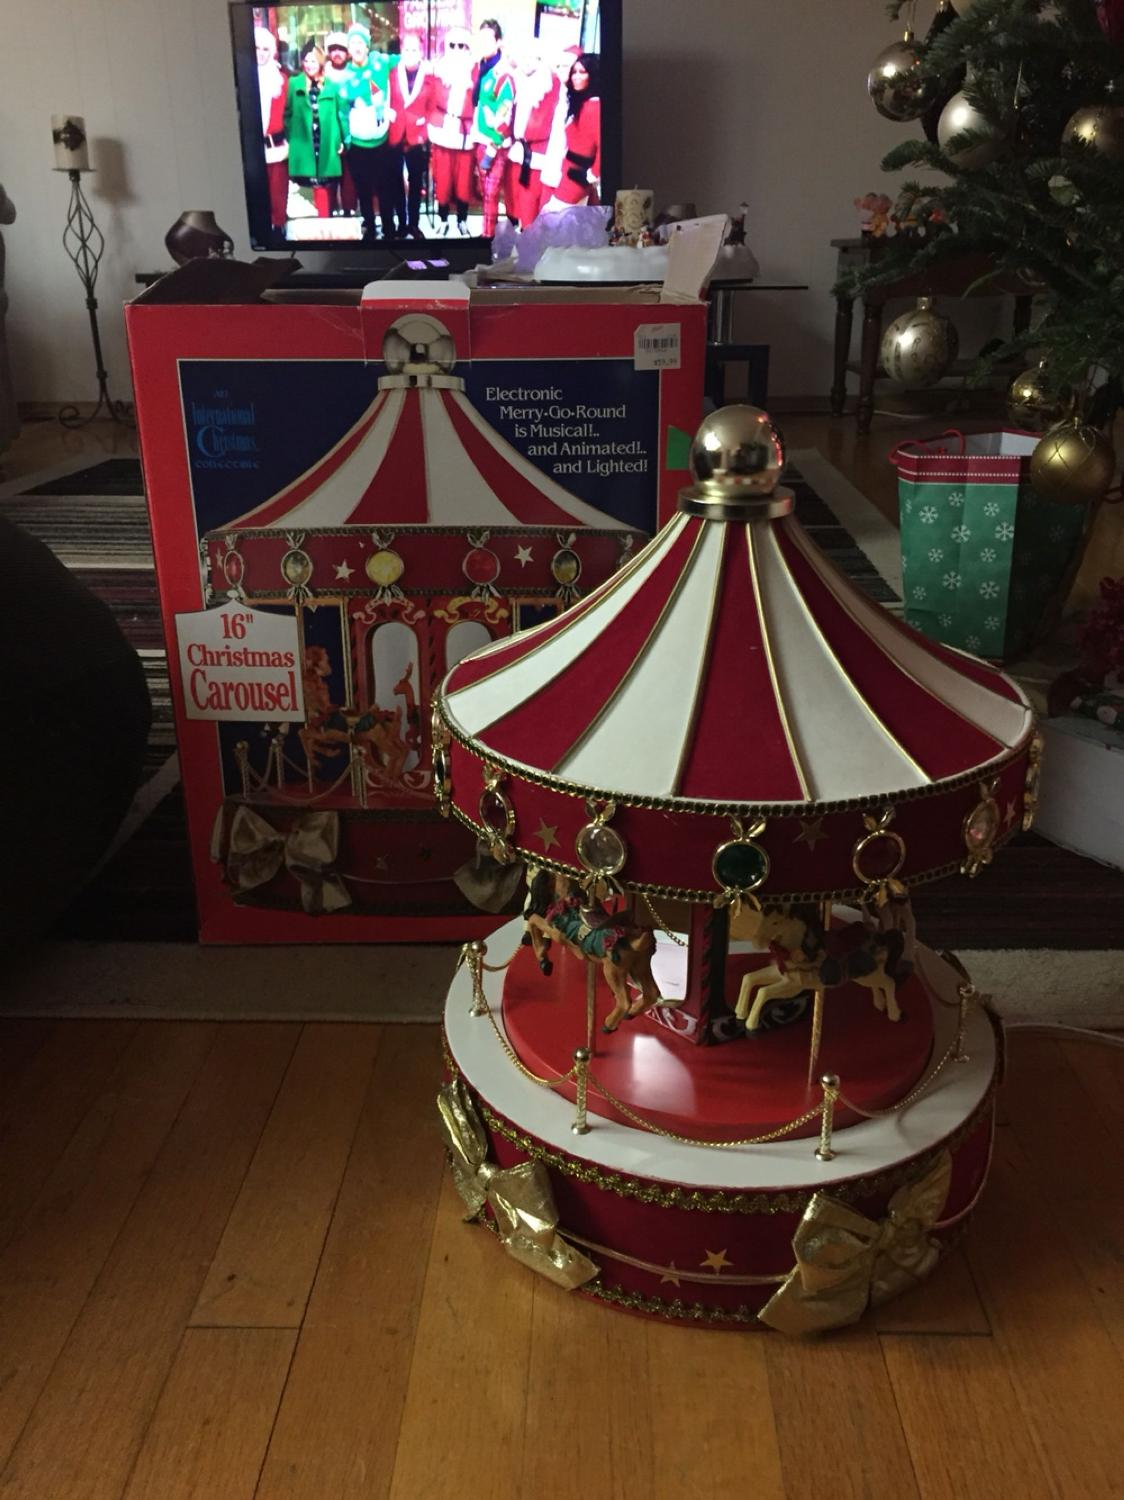 find more 16 christmas carousel vintage christmas decorations for sale at up to 90 off